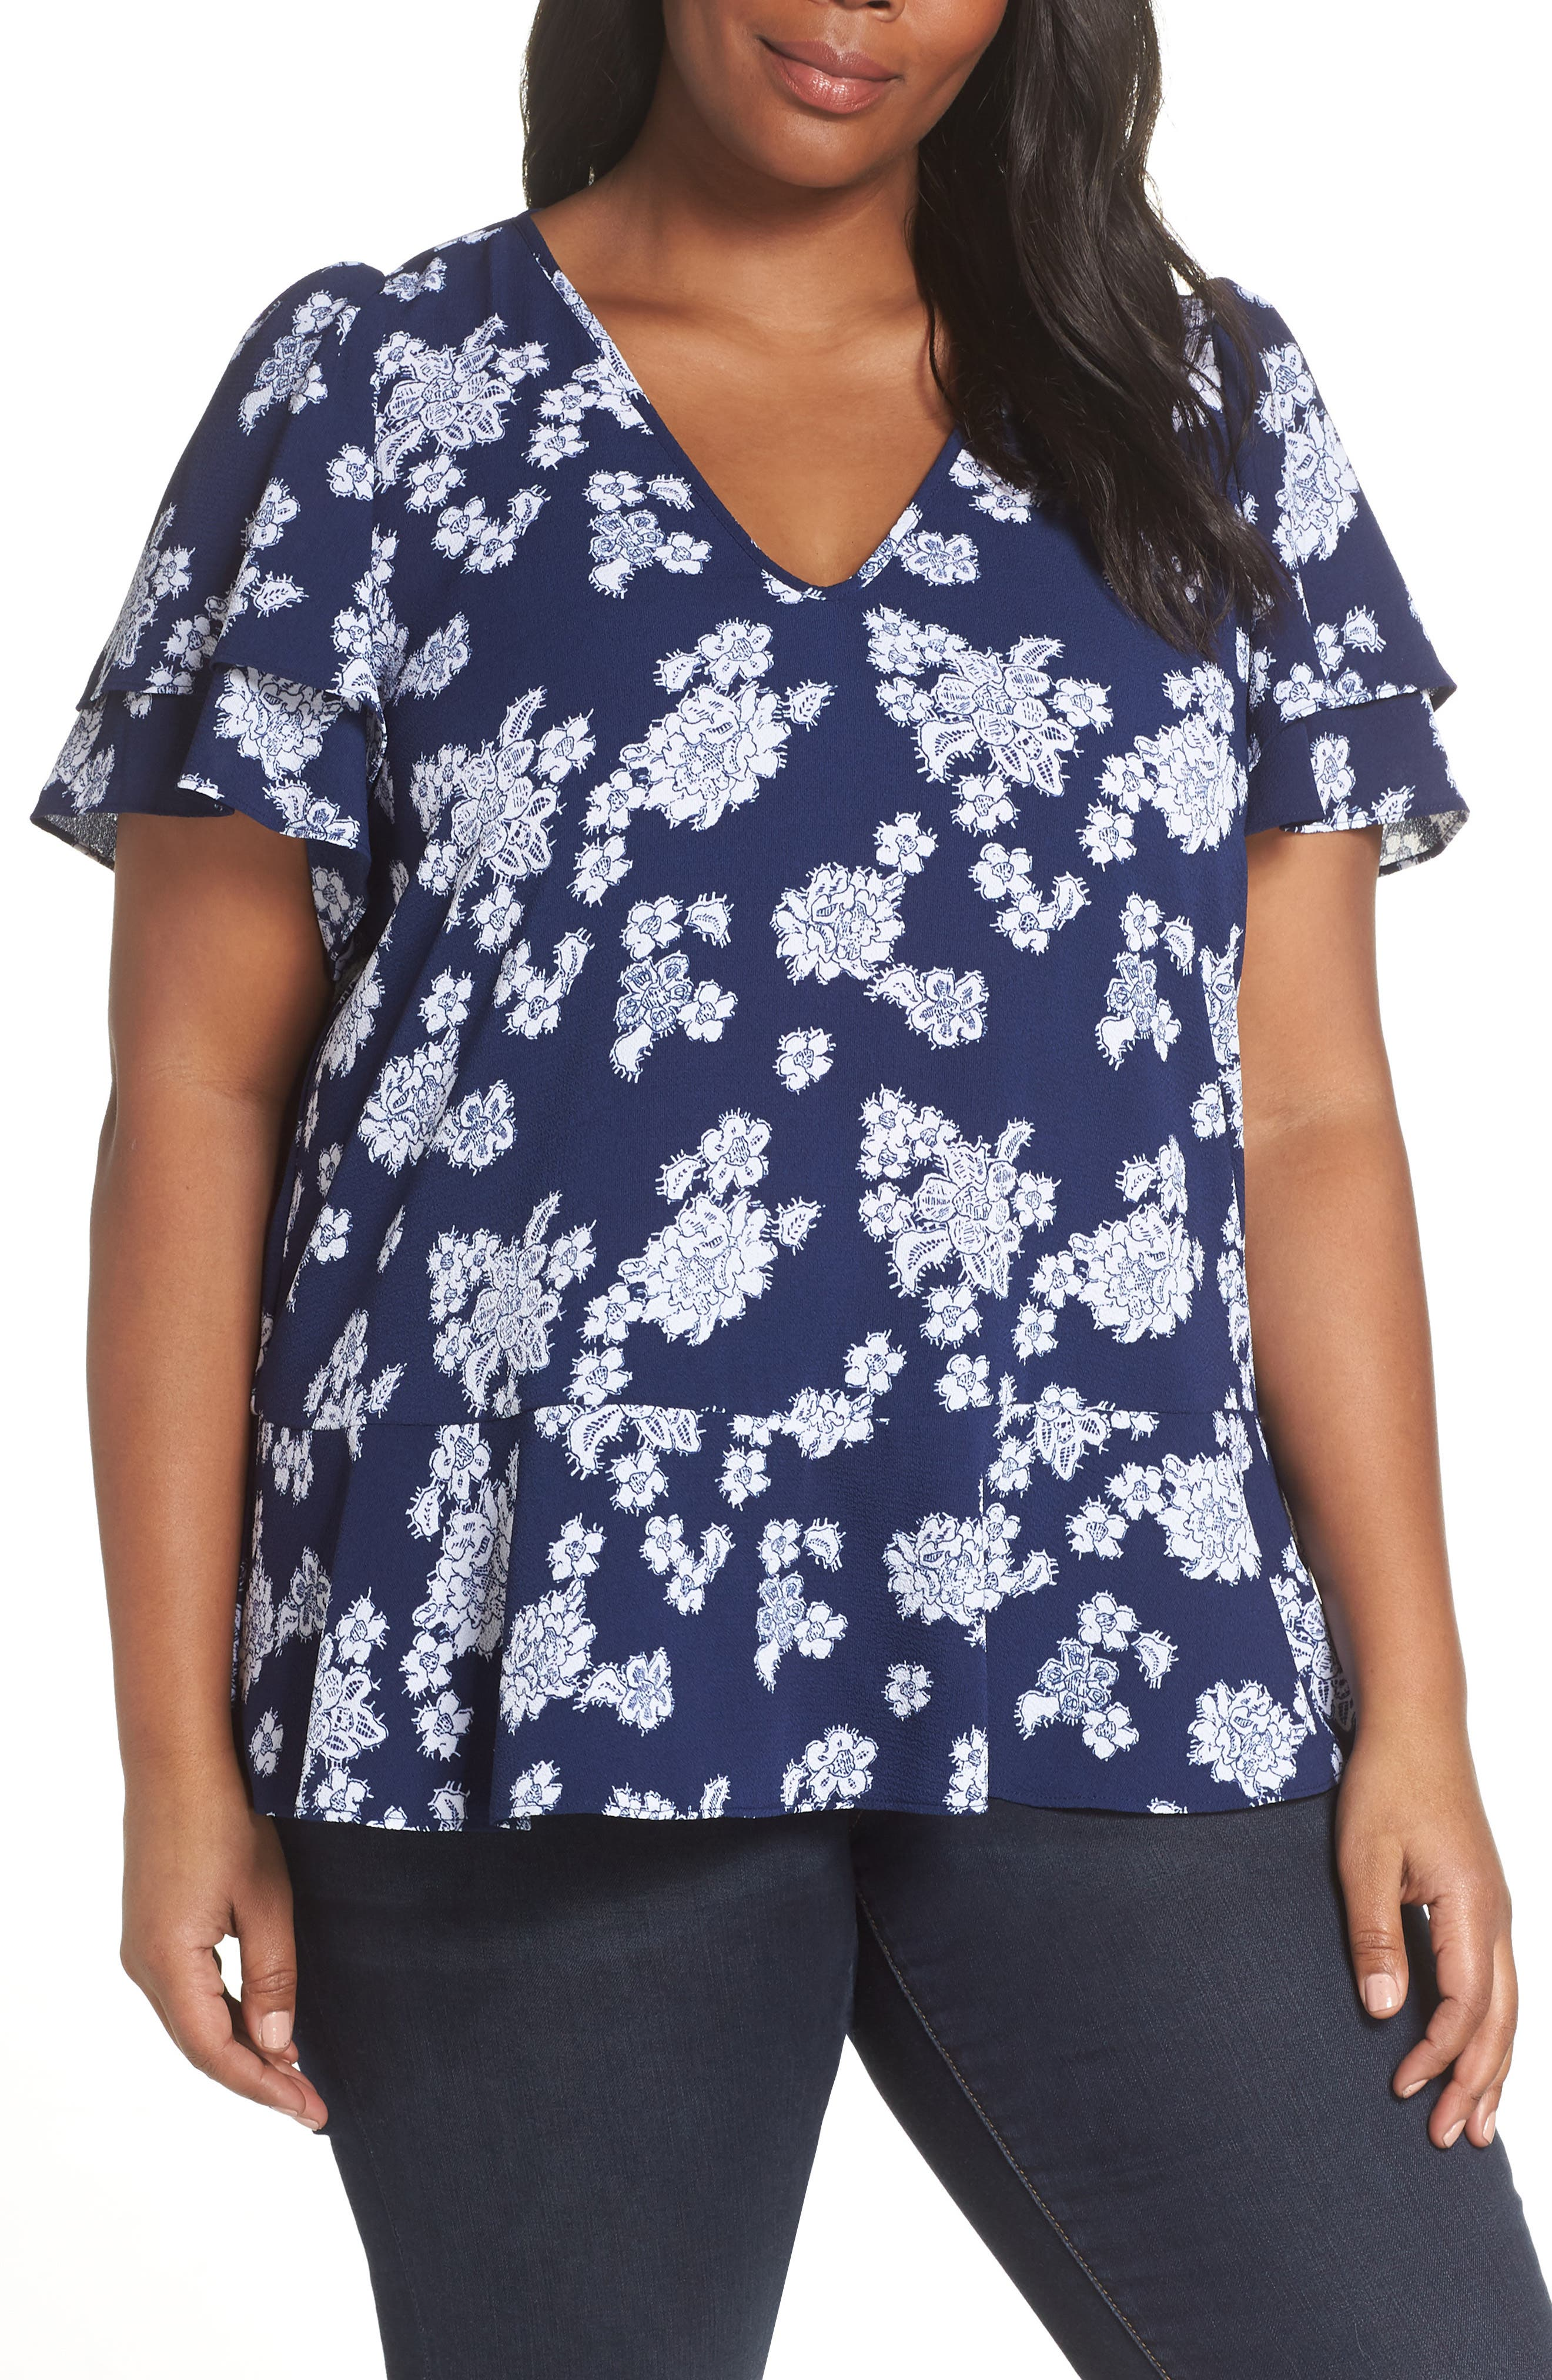 Tossed Lace Flowers Top,                             Main thumbnail 1, color,                             TRUE NAVY/ WHITE